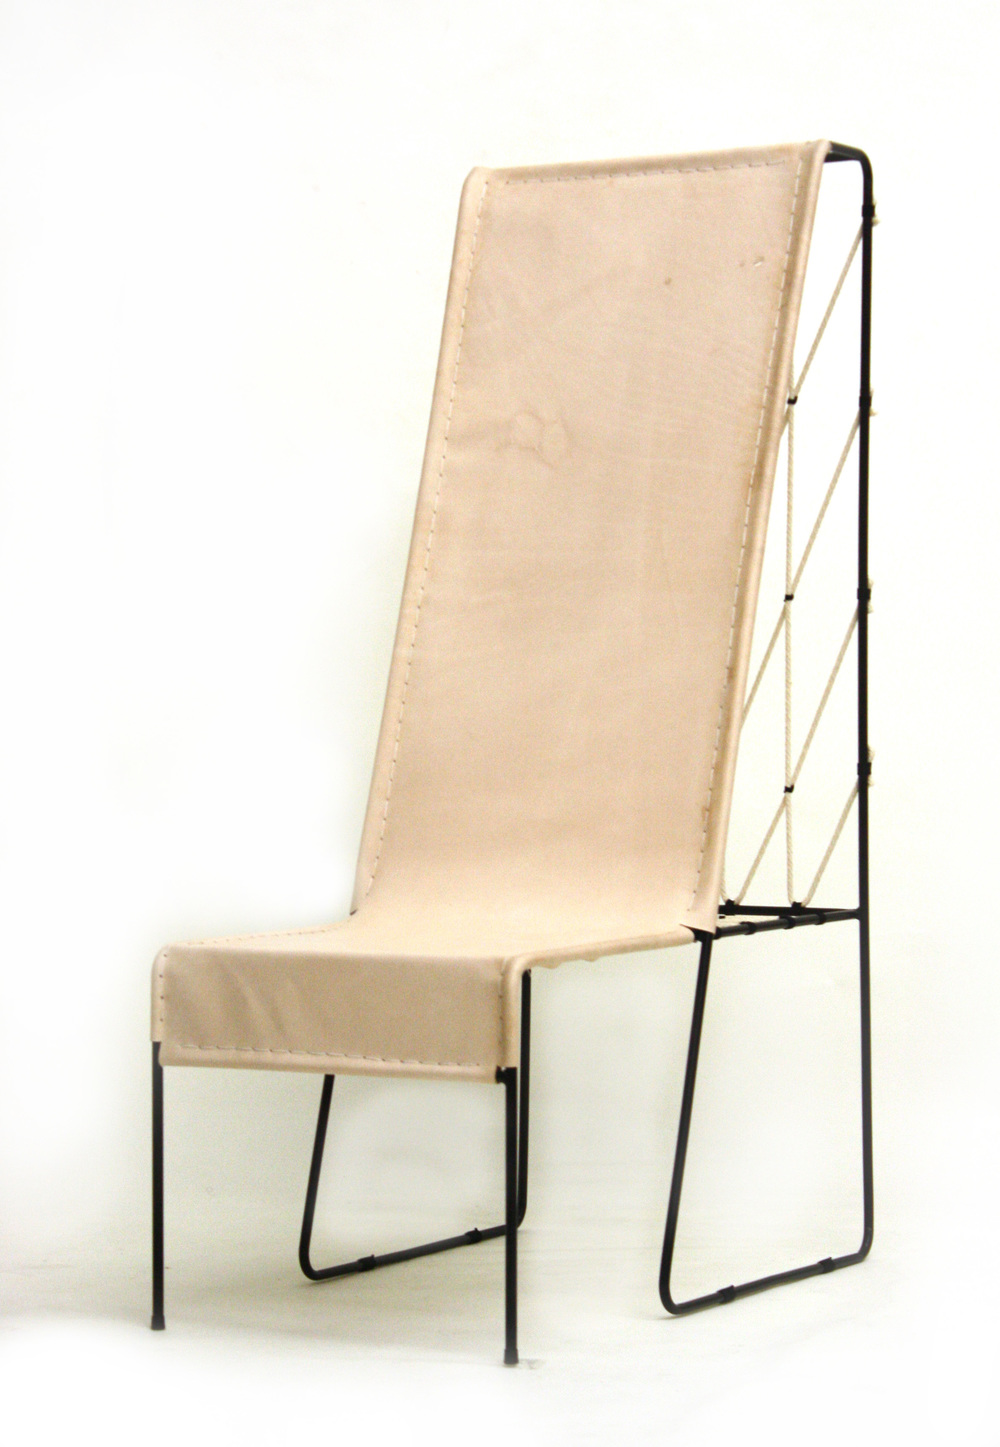 Paper Clip Lounge , 2012  Steel rod, leather, cotton rope